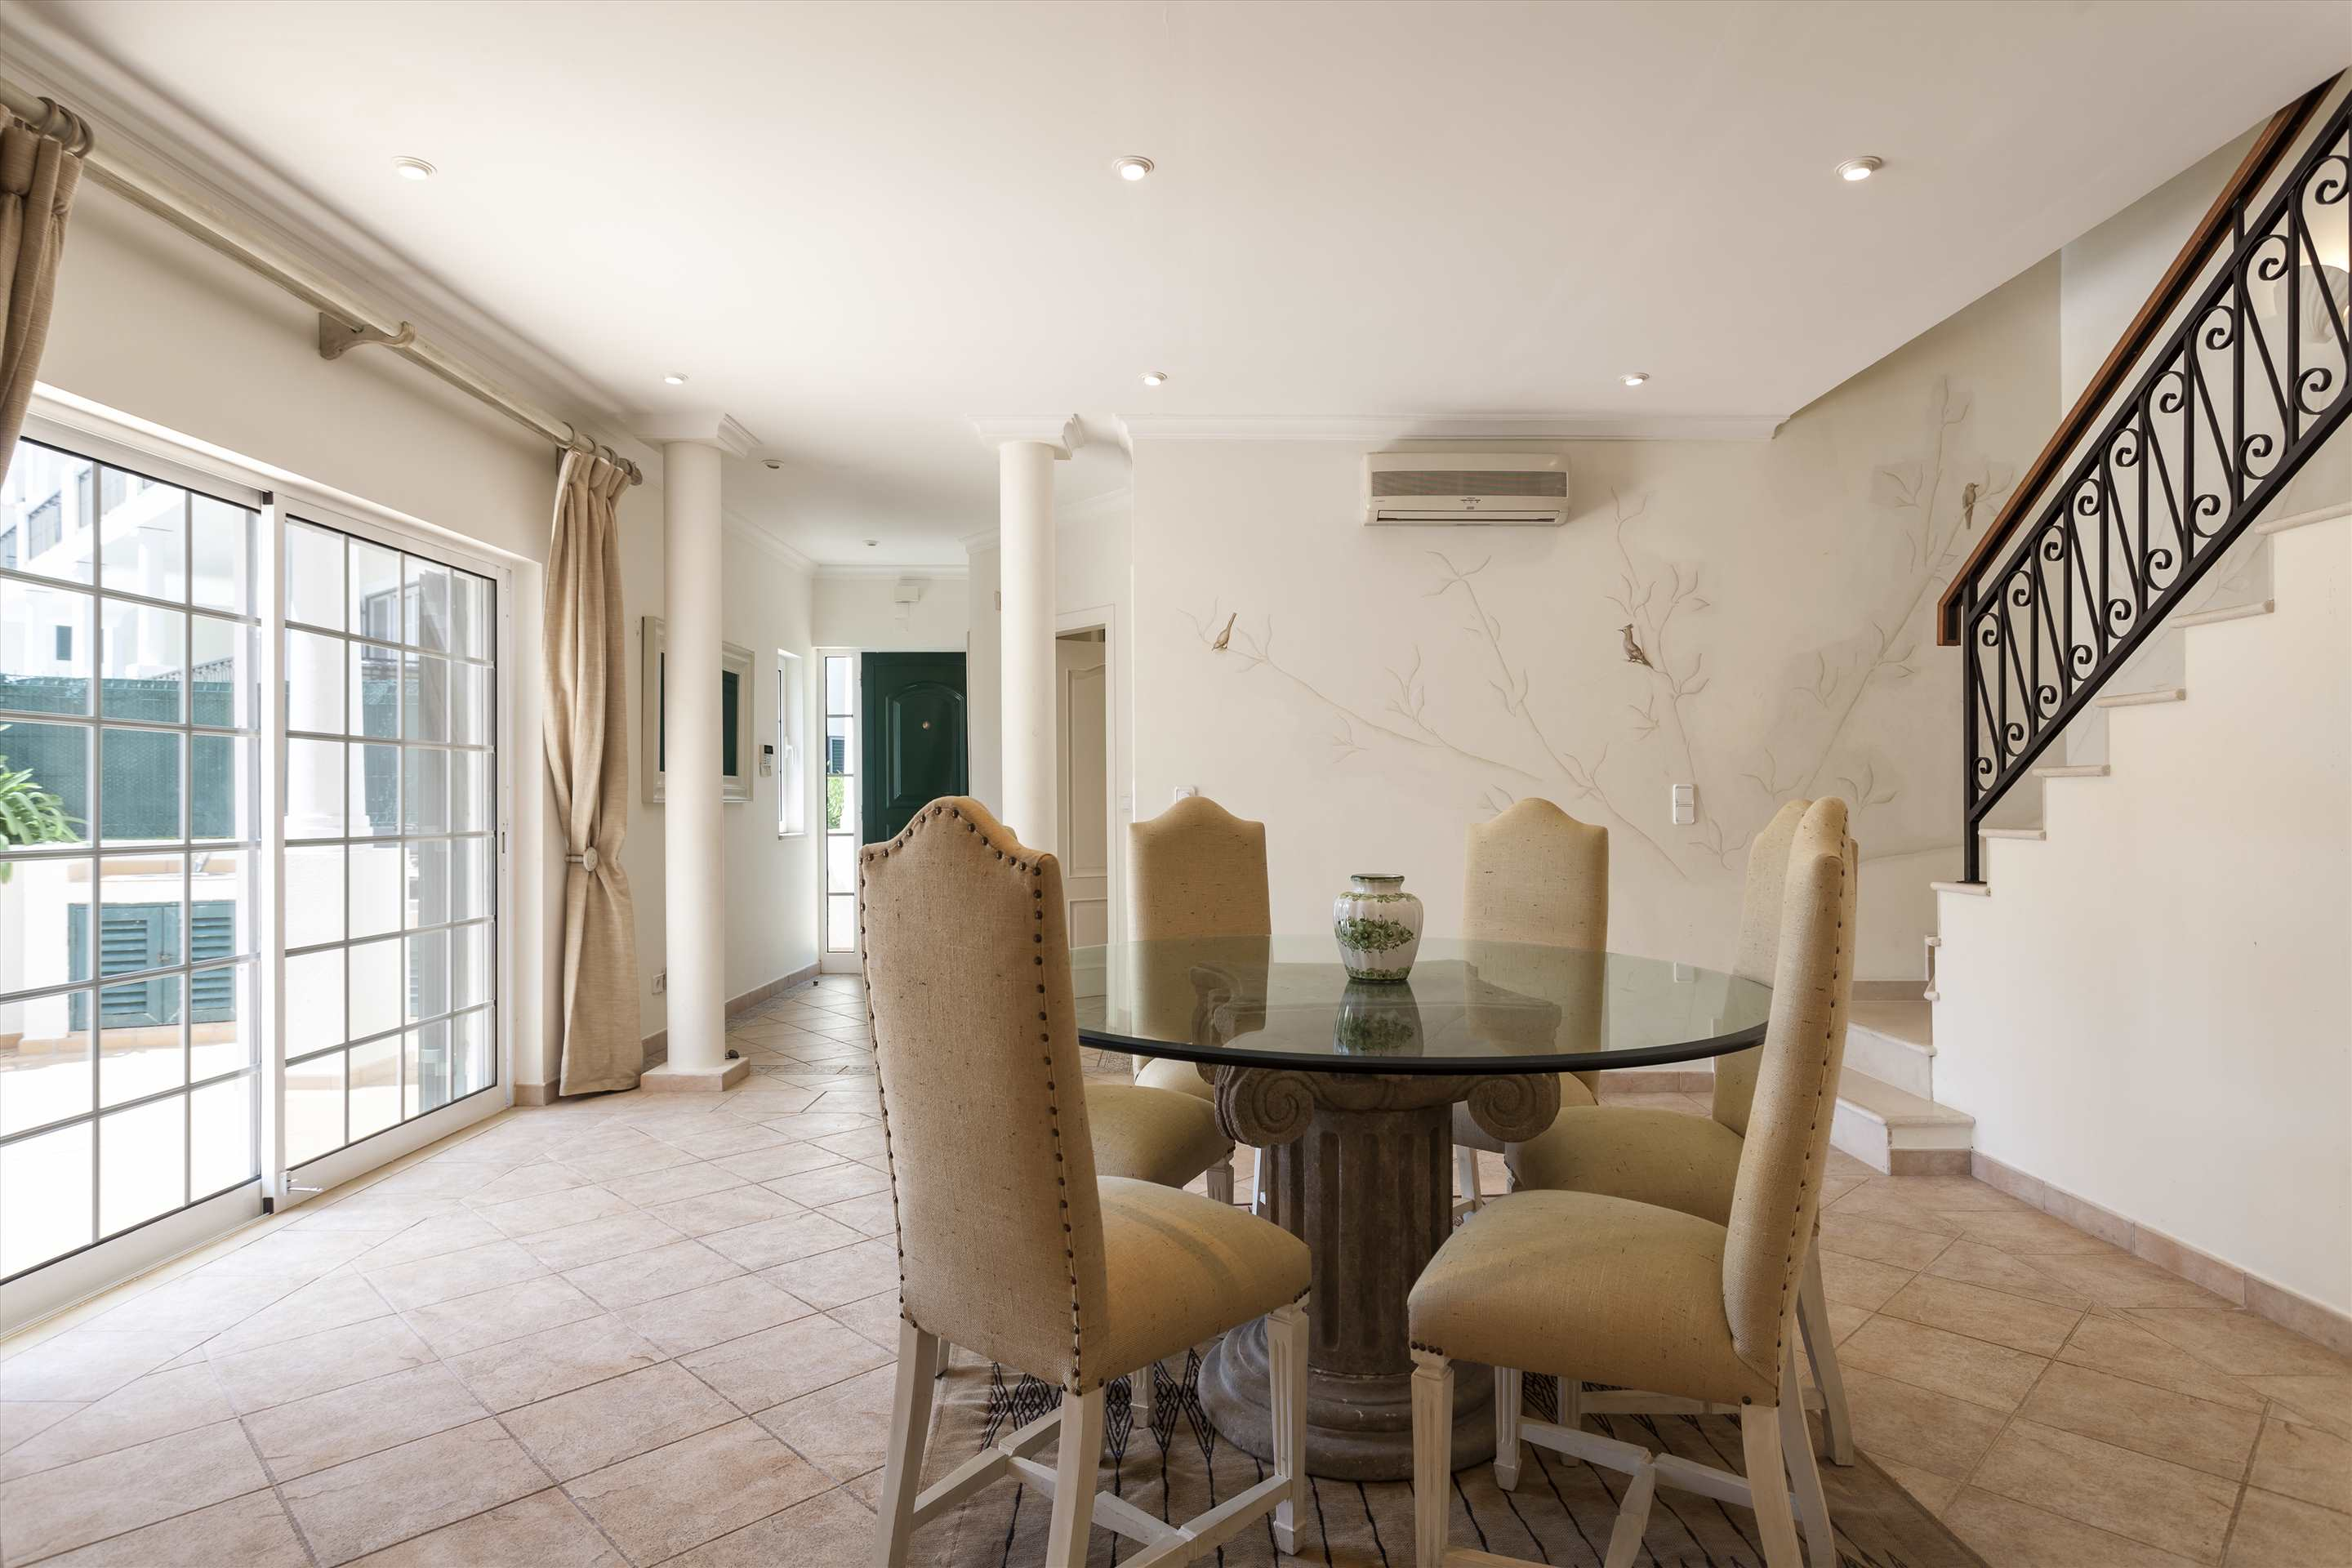 Villa Catarina, 3 bedroom apartment in Vale do Lobo, Algarve Photo #6